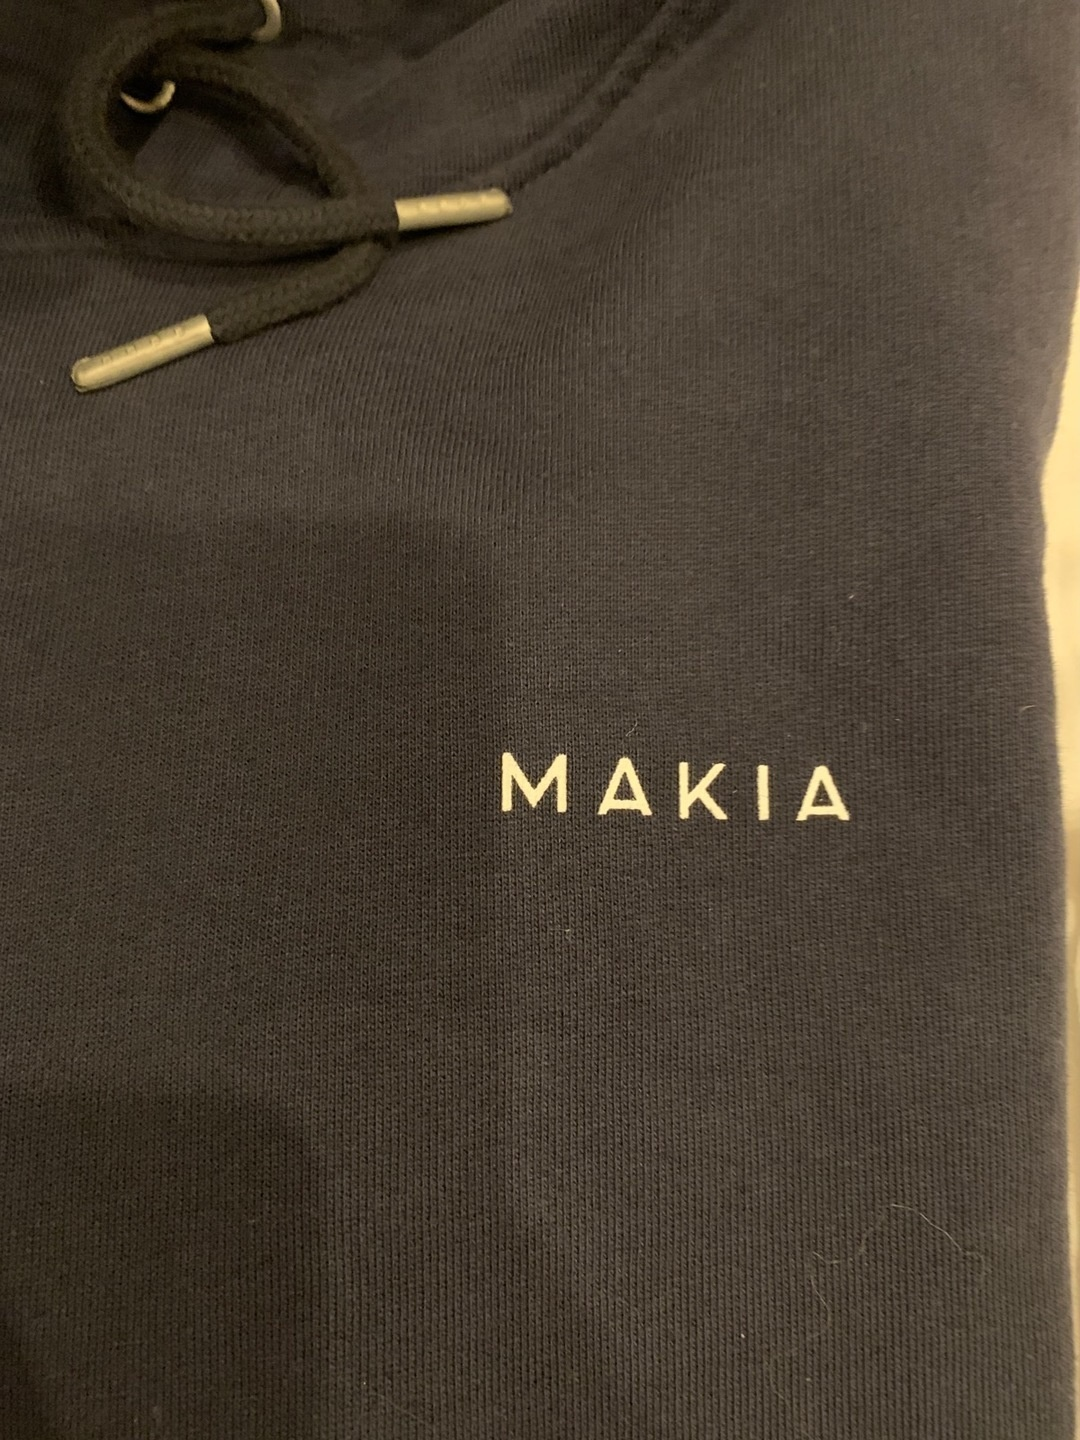 Damers hættetrøjer og sweatshirts - MAKIA photo 3